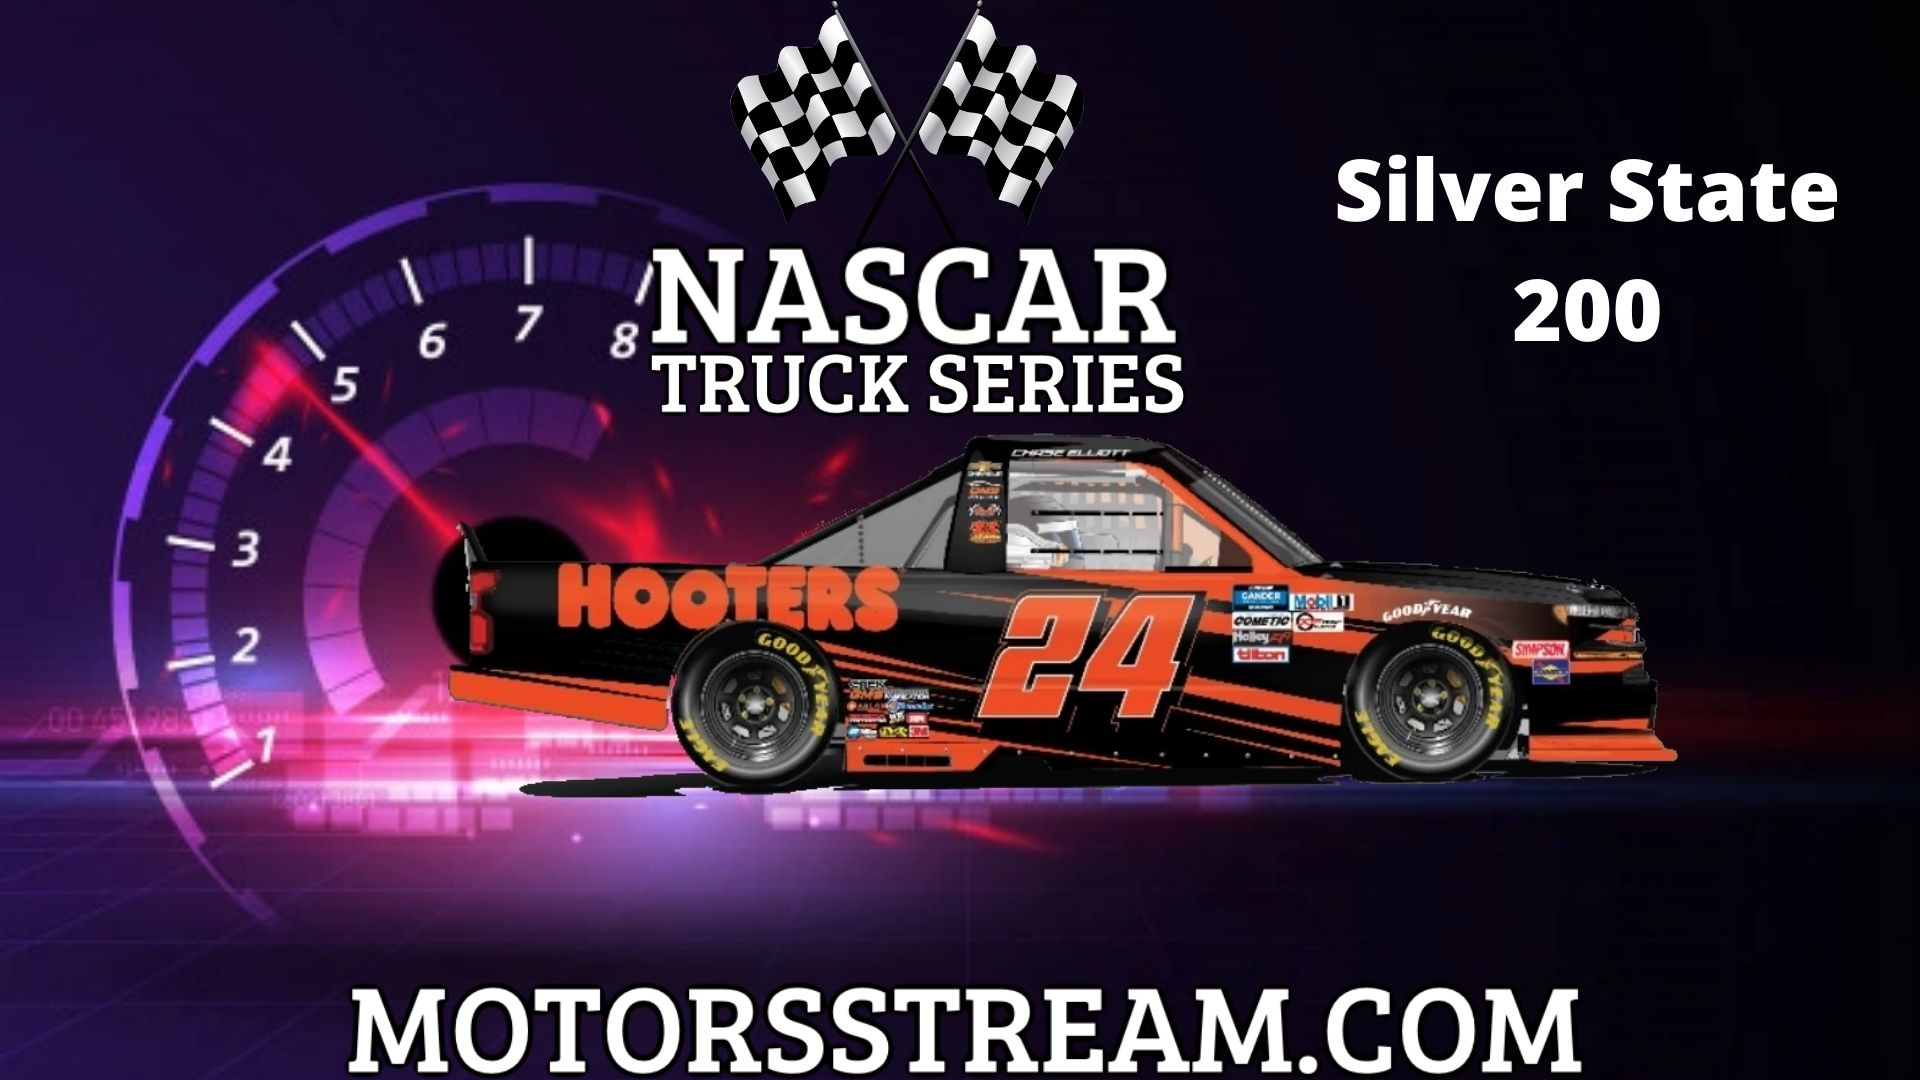 Silver State 200 Live Stream | NASCAR Truck 2021